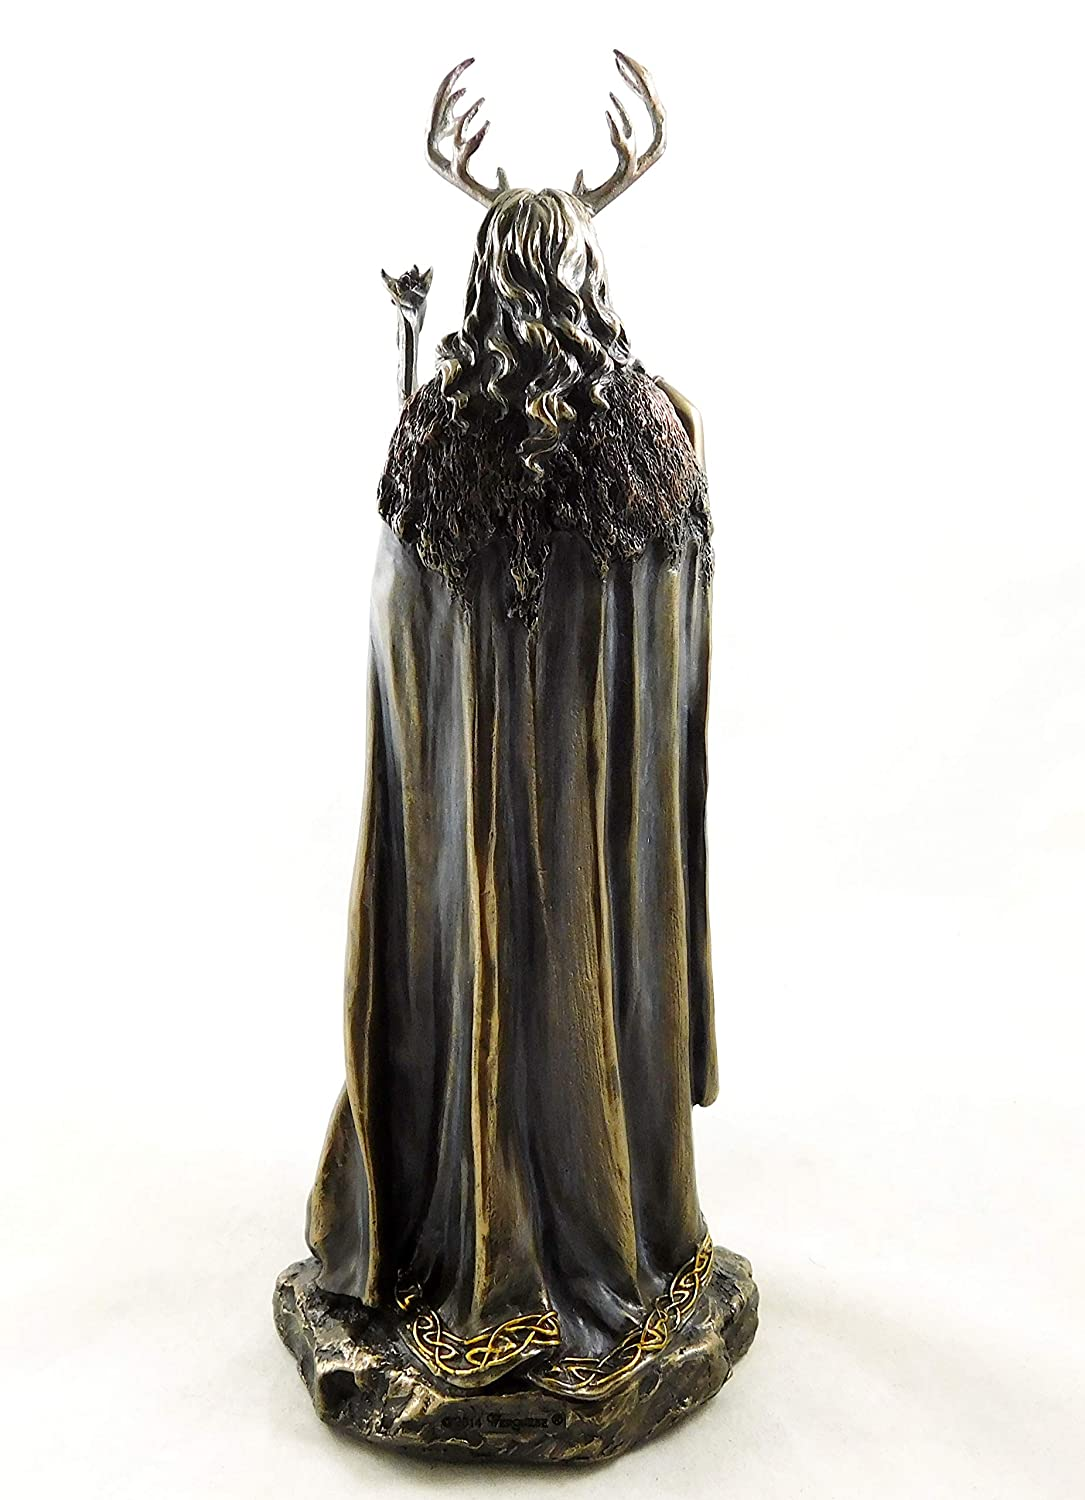 Wiccan Lady Bronzed Witch Statue Keeper of the Forest Witcraft Figurine Ornament by Nemesis Now